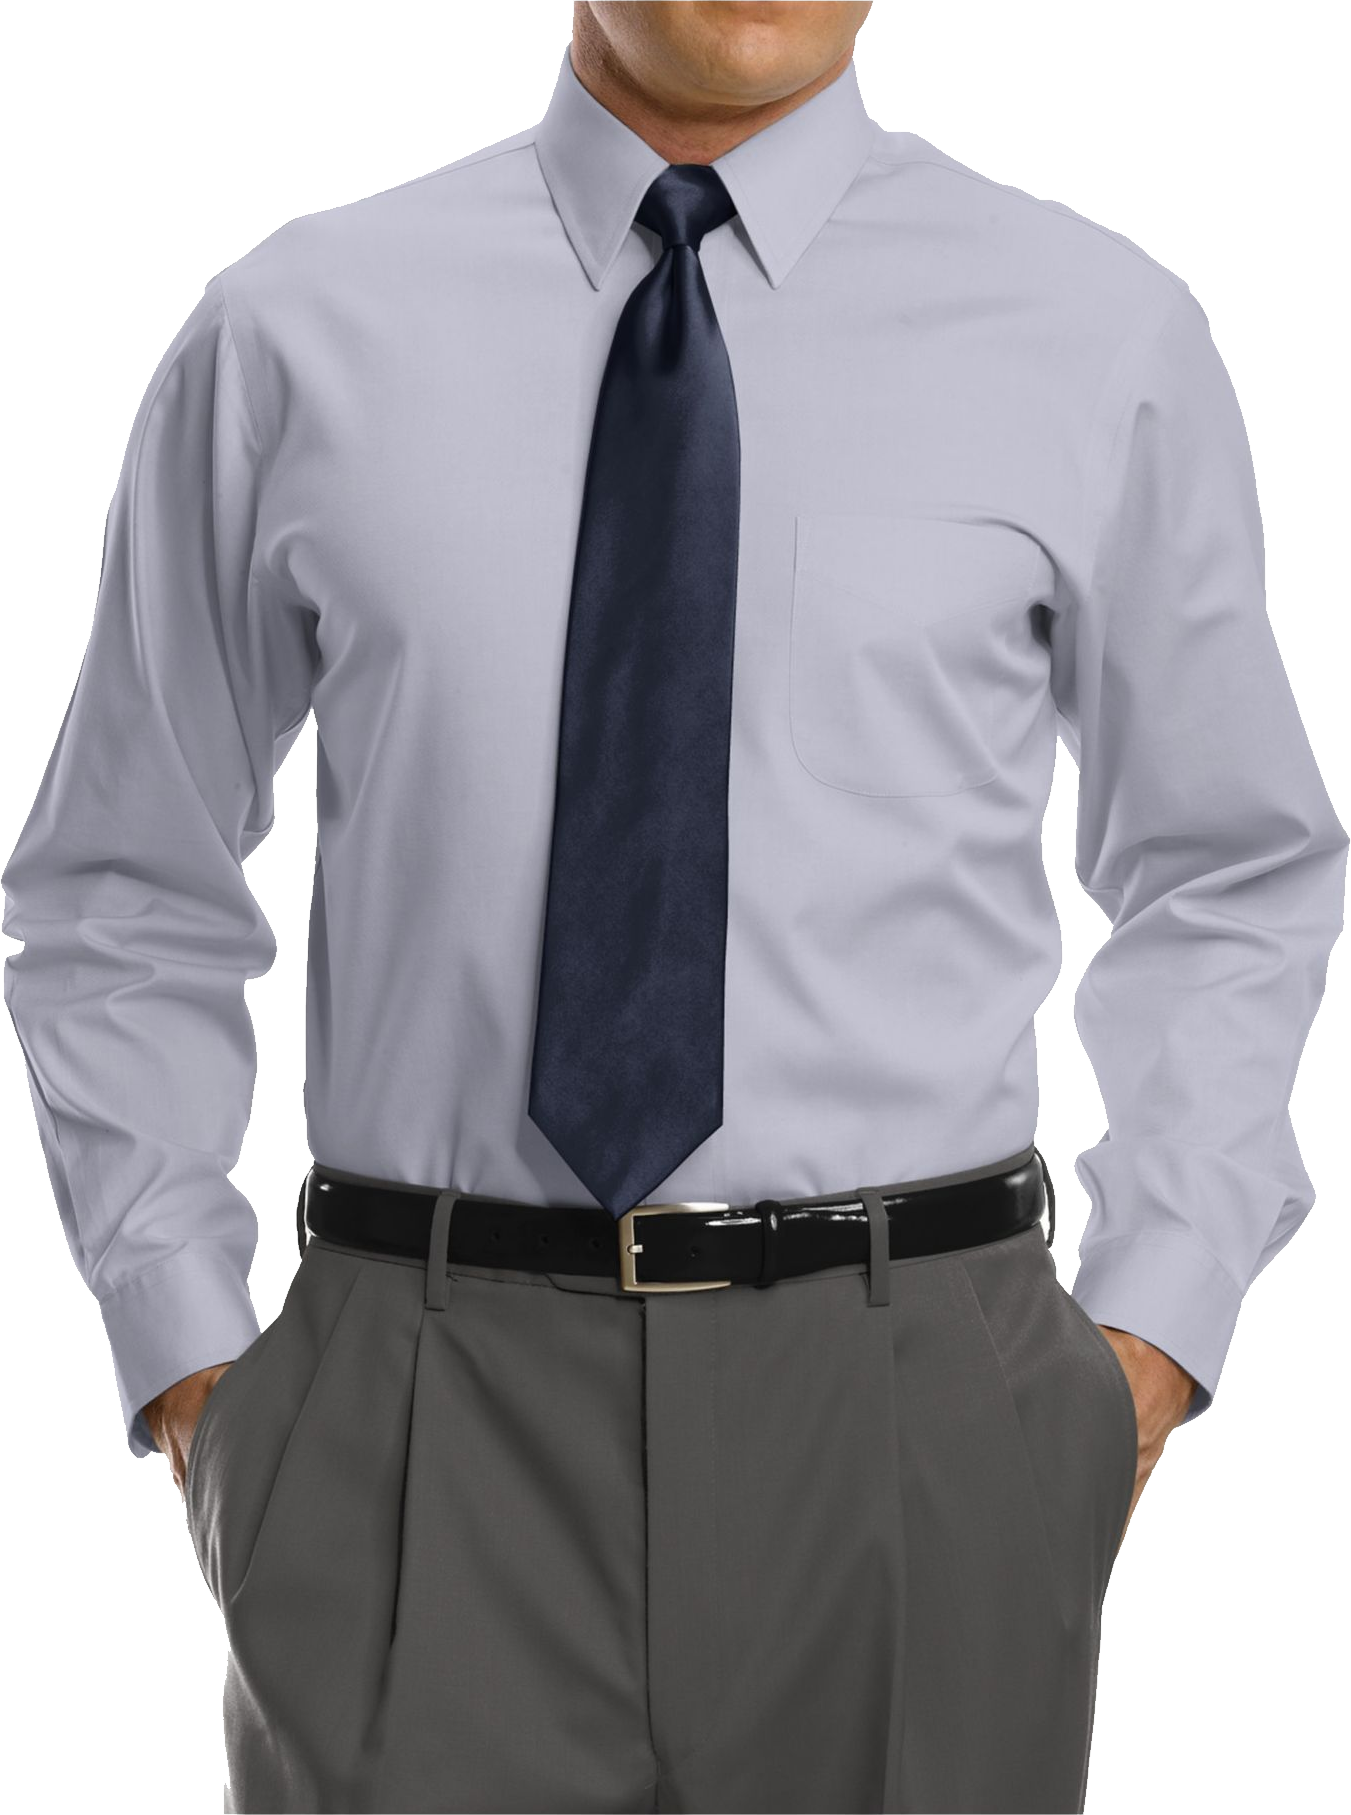 Of White Full Sleeve Shirt With BlackTie PNG Image